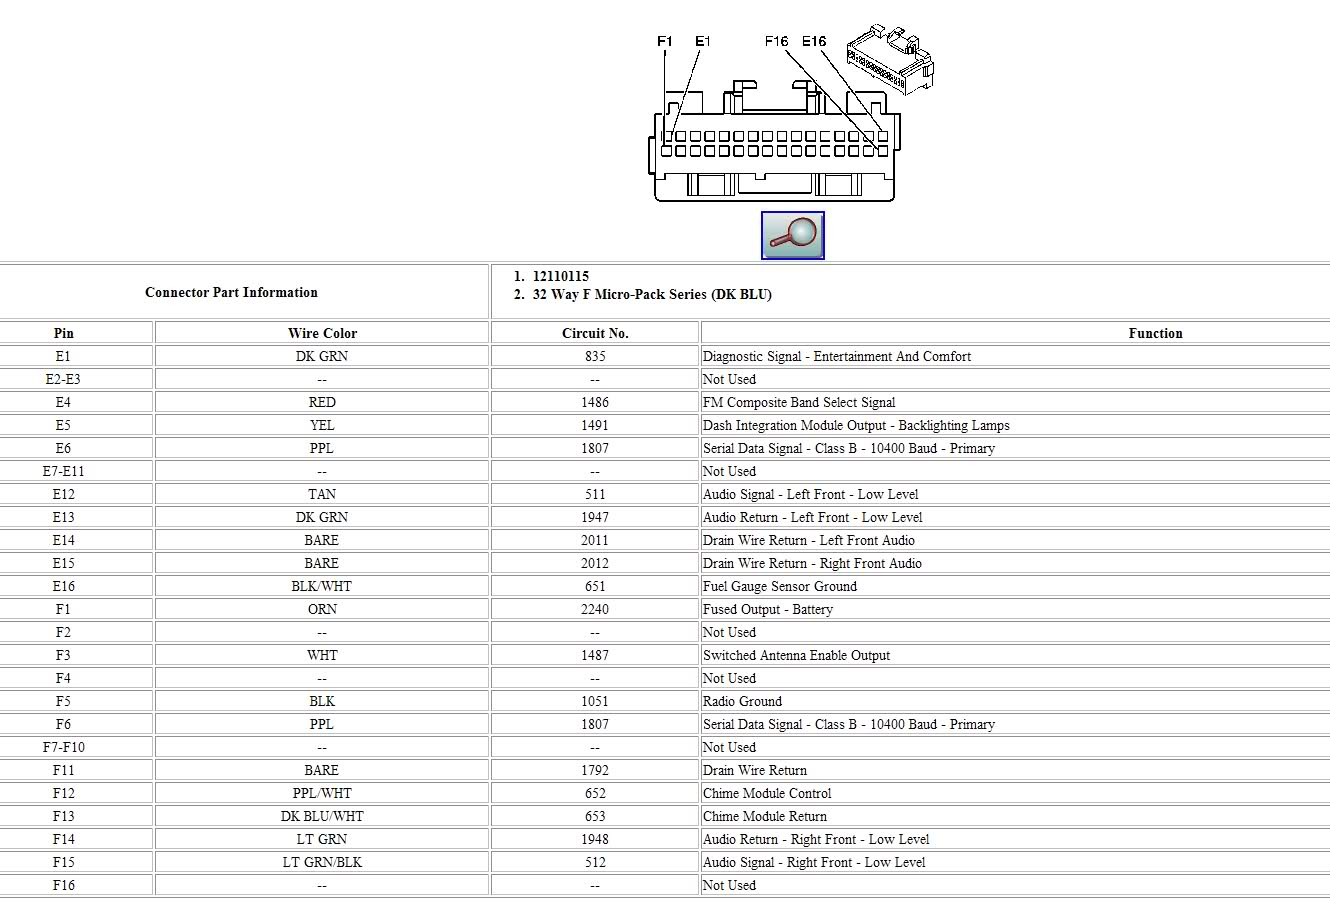 2002 Cadillac Escalade Bose Stereo Wiring Diagram Sample